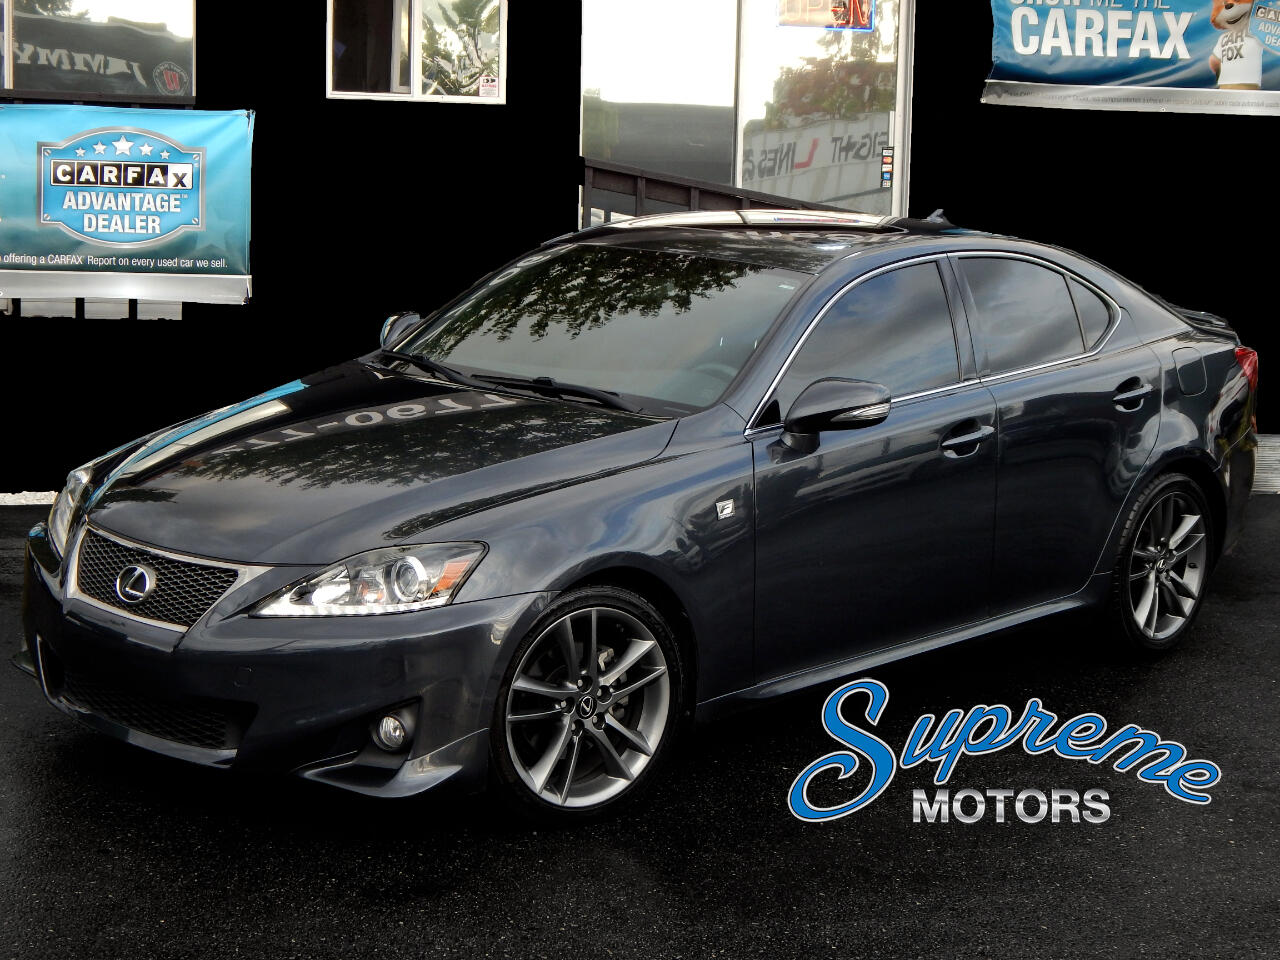 2011 Lexus IS F-Sport Package, CLEAN CARFAX, Suede F Interior, S